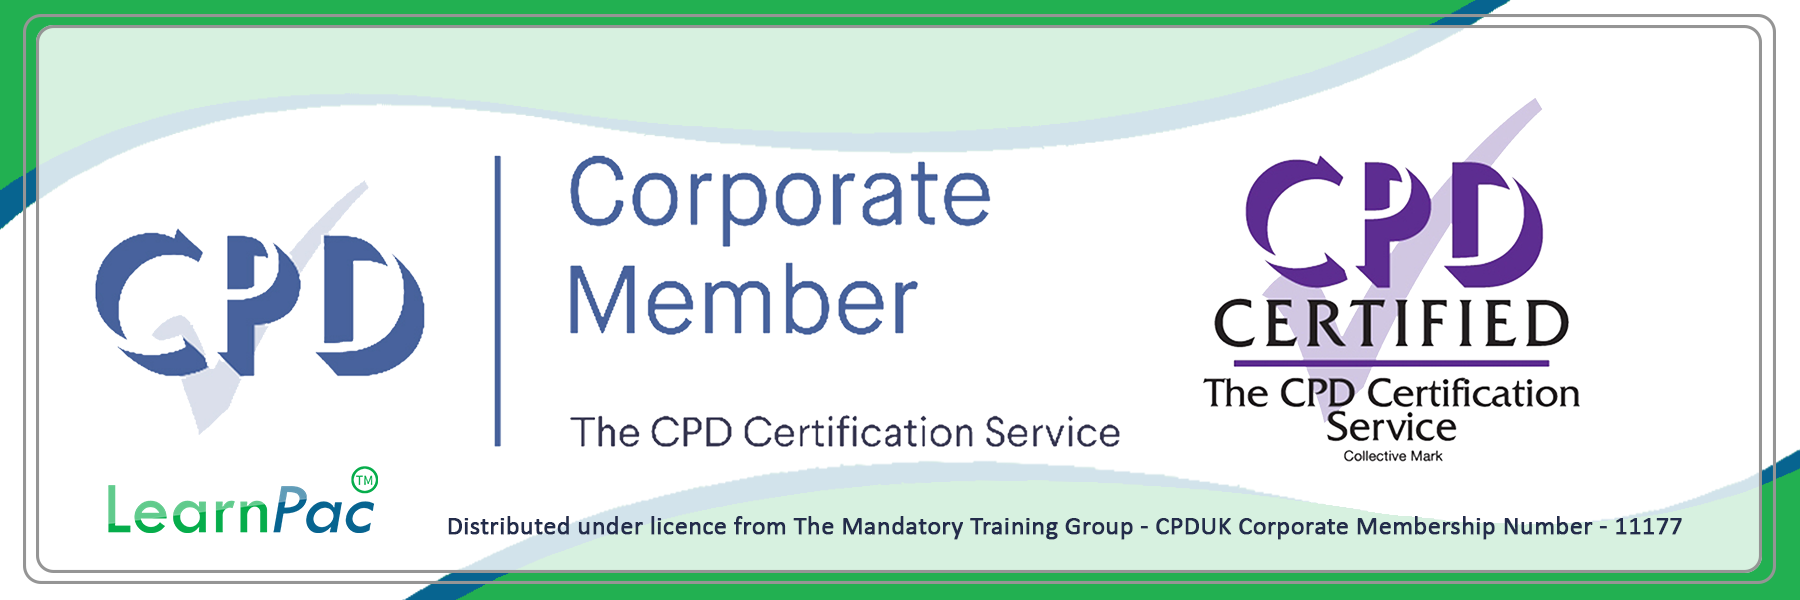 Social Media - Online Training Course - CPD Accredited - LearnPac Systems UK -